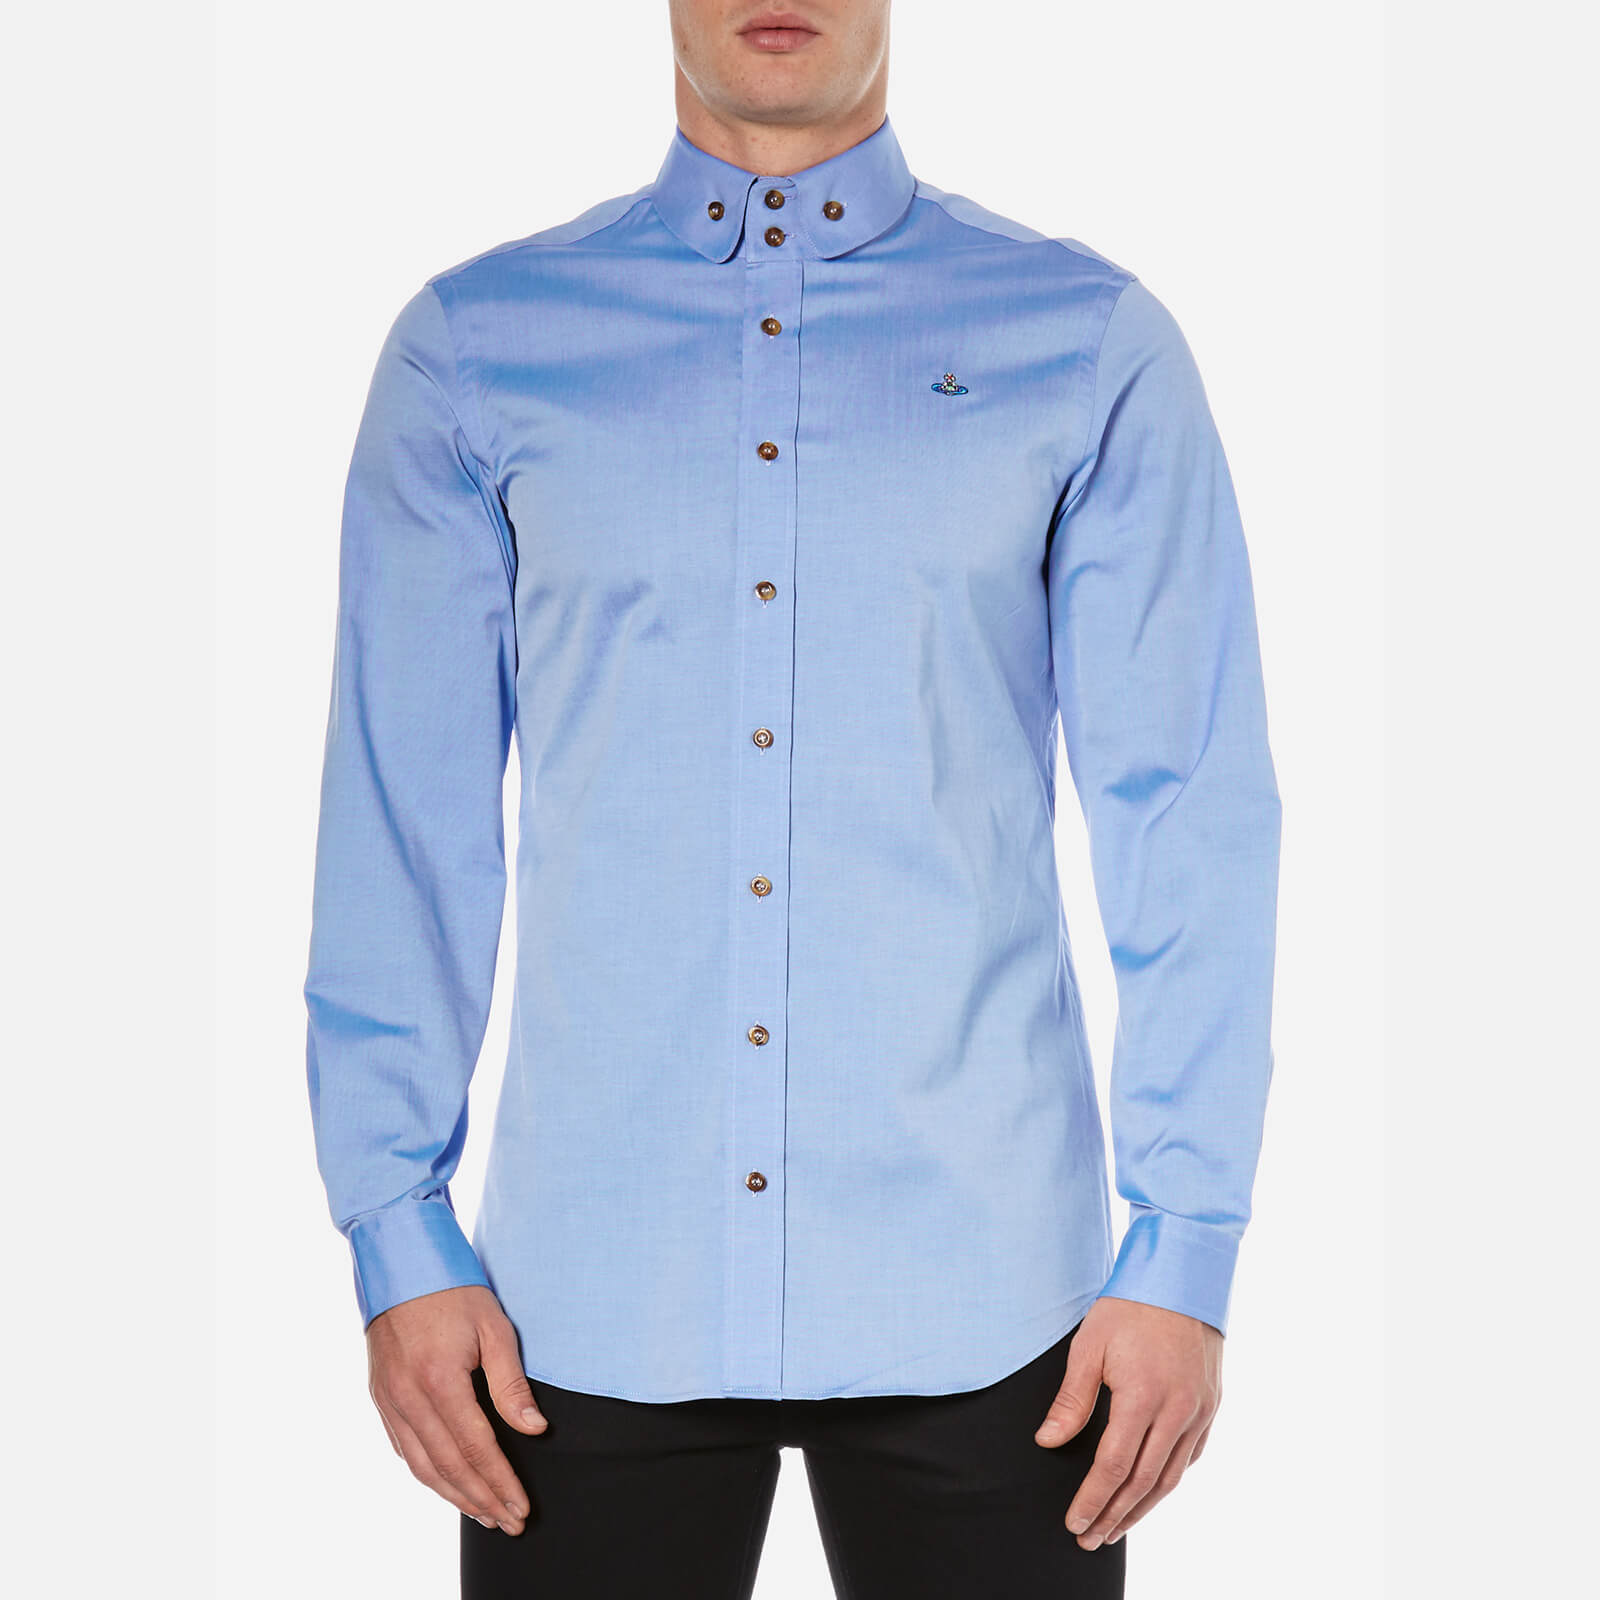 Vivienne Westwood MAN Men's Classic Oxford Two Button Shirt - Light Blue -  Free UK Delivery over £50